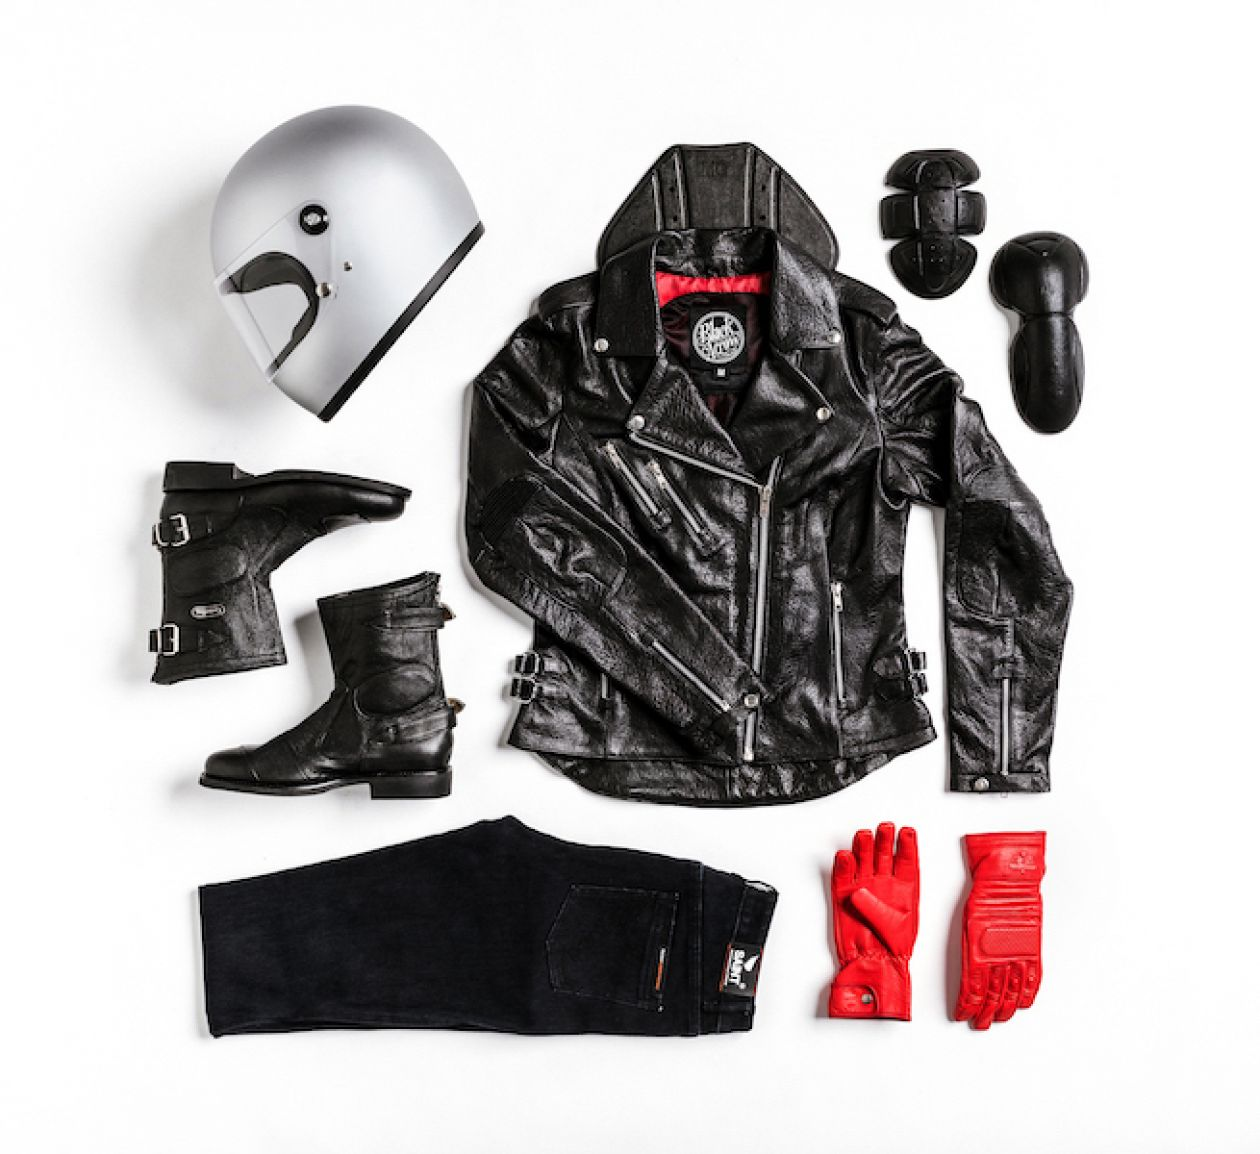 Motorcycle gear, pants, jacket, gloves, helmet, boots, impact protectors, style rider, female rider